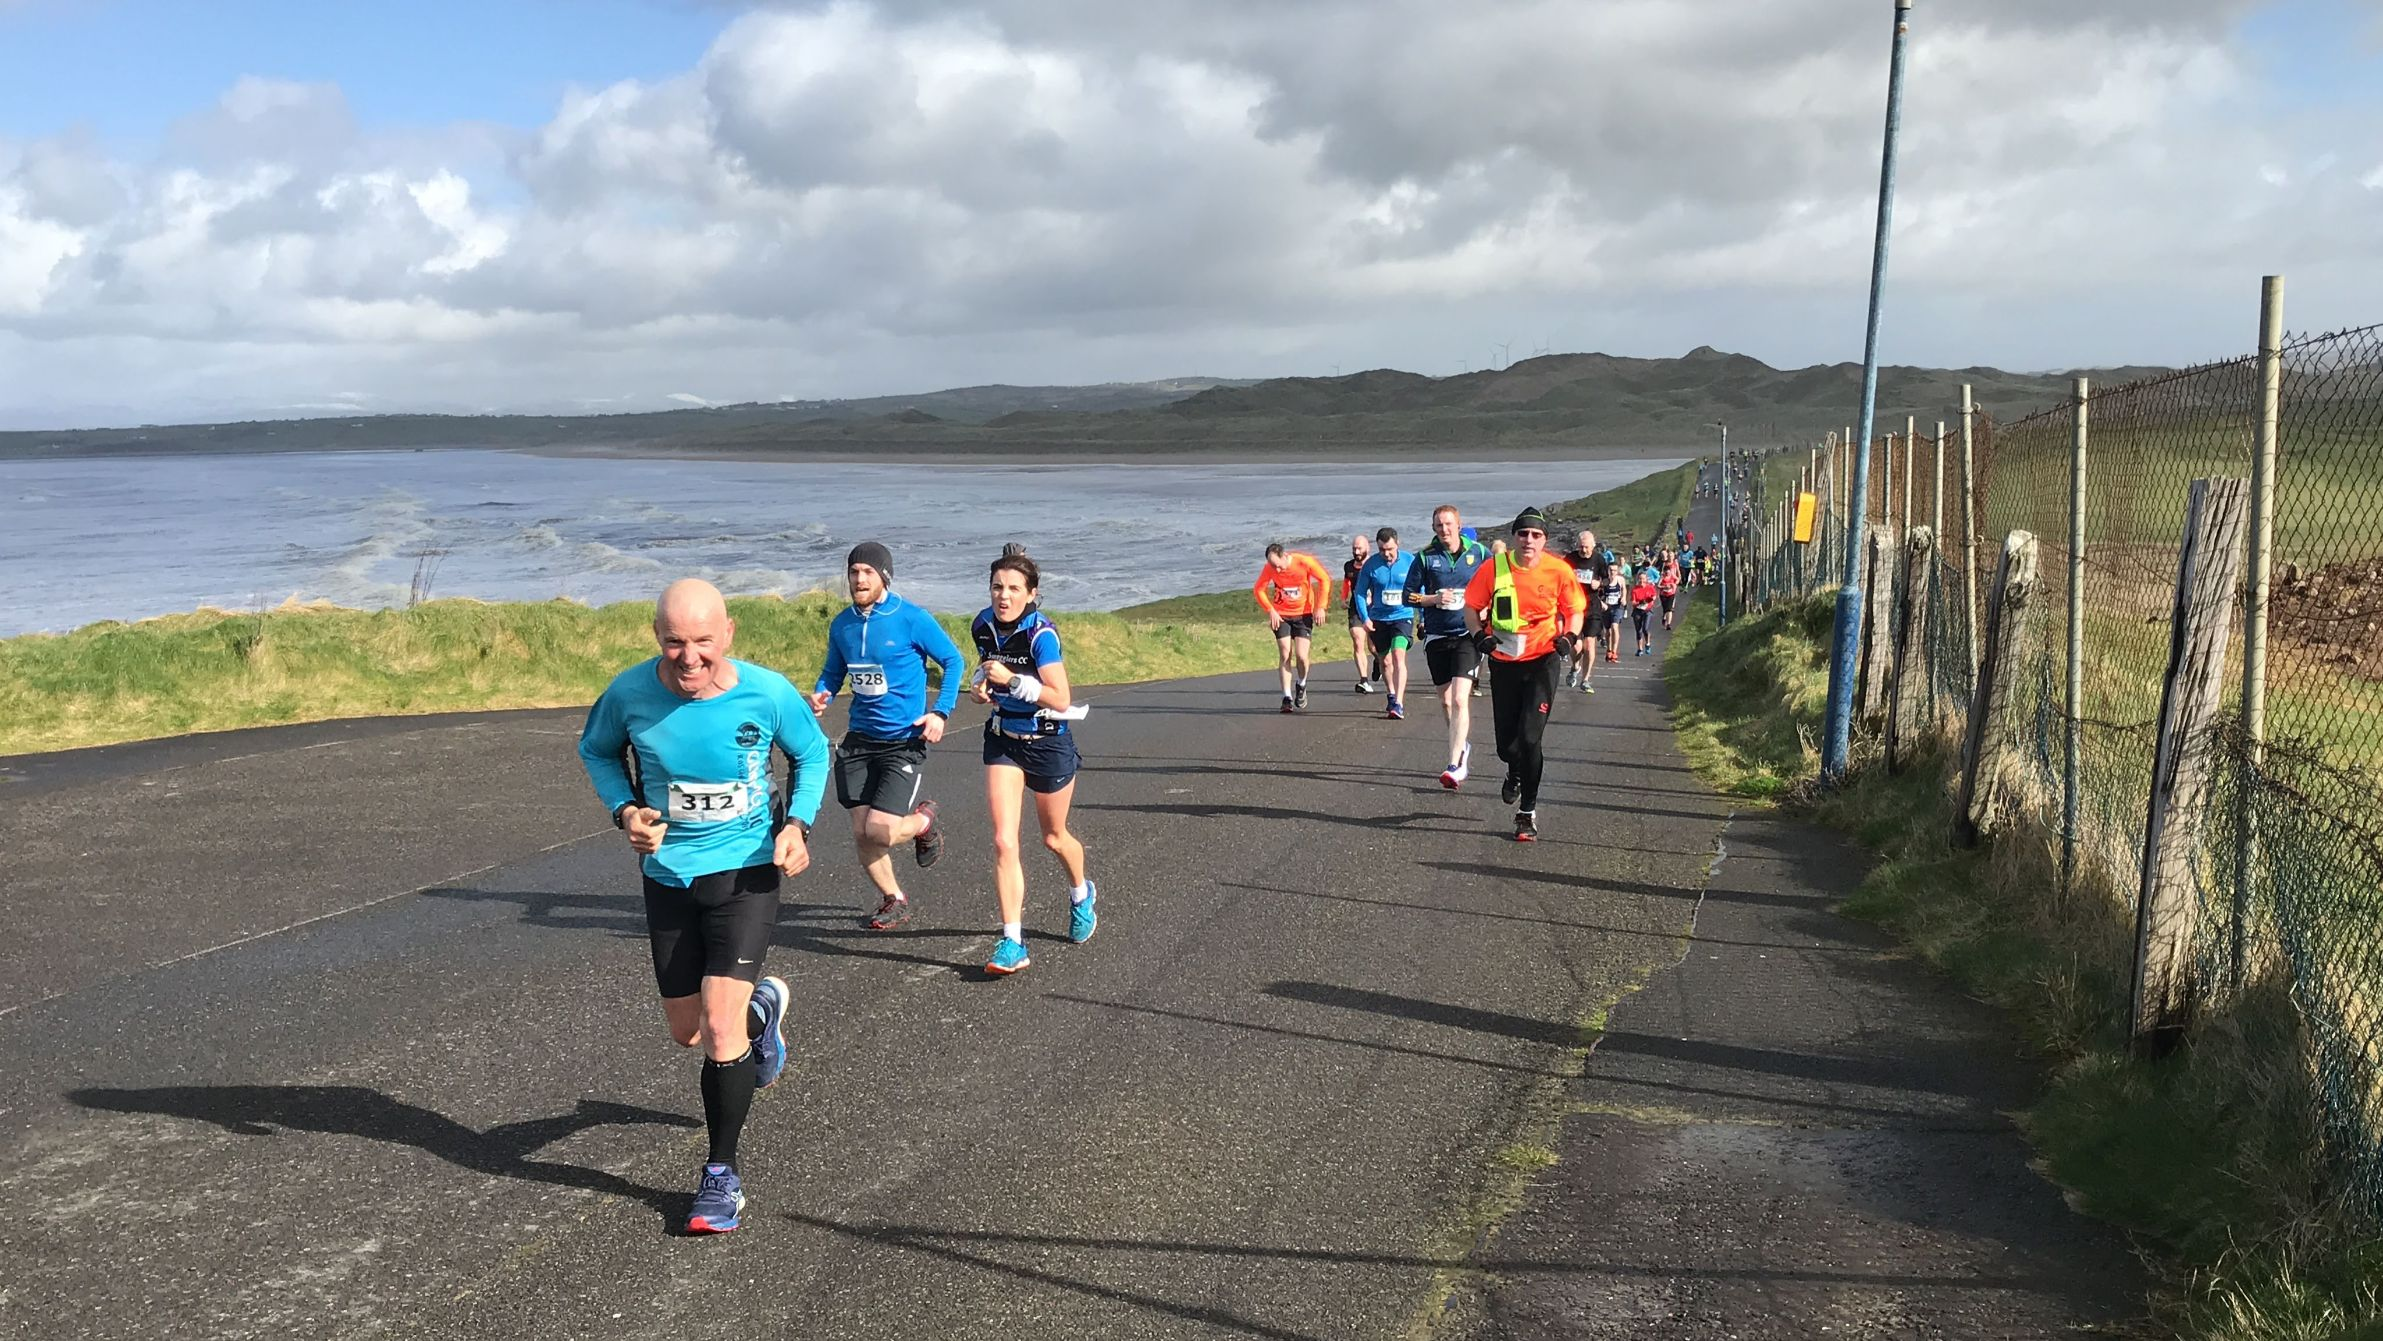 Runners on Roguey during the 2019 Cara Bundoran Challenge small